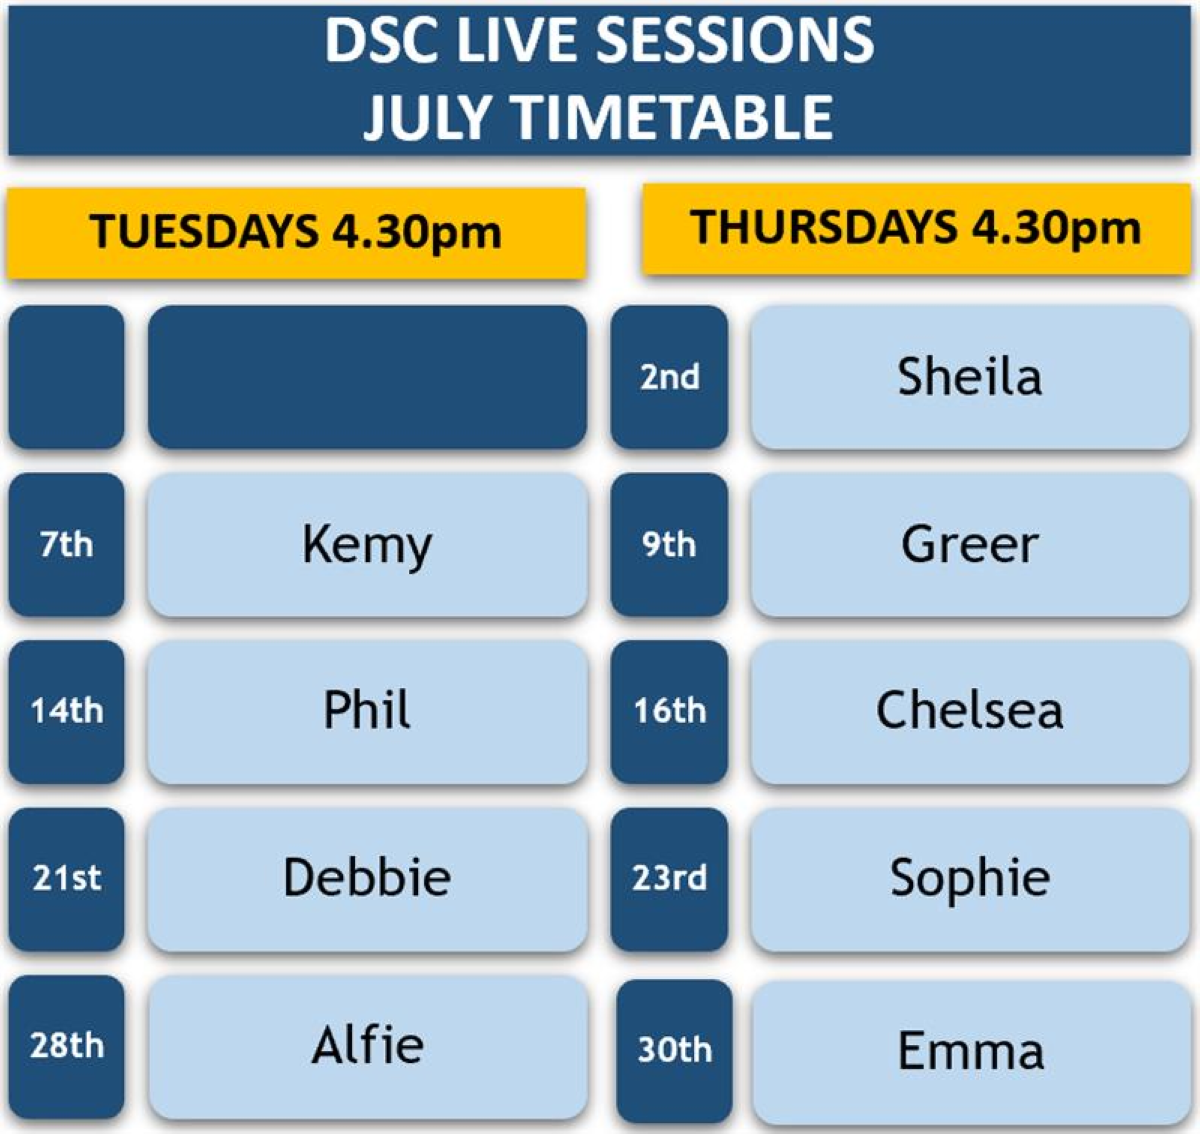 DSC Live Sessions Timetable - July